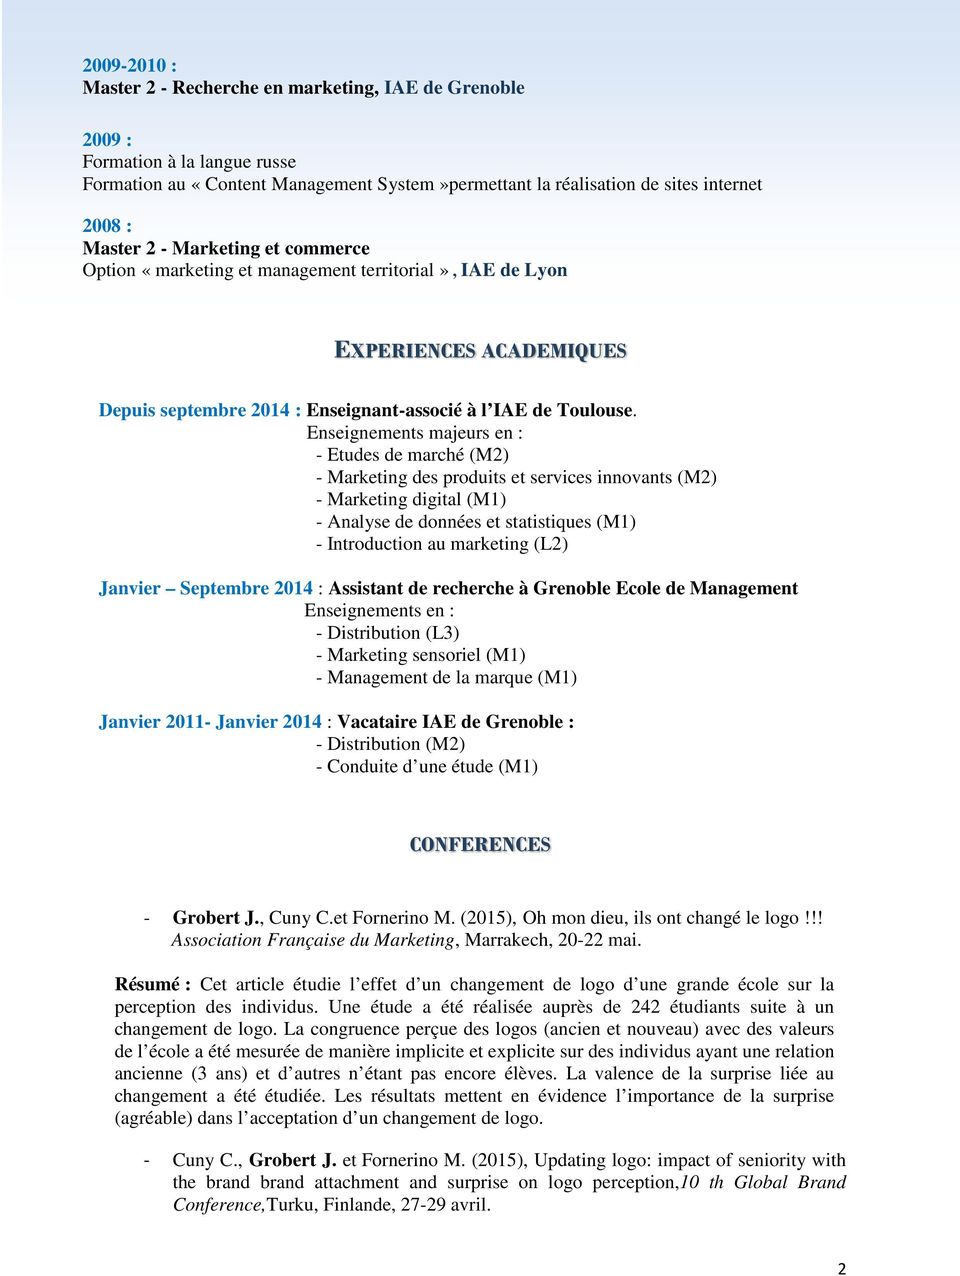 Enseignements majeurs en : - Etudes de marché (M2) - Marketing des produits et services innovants (M2) - Marketing digital (M1) - Analyse de données et statistiques (M1) - Introduction au marketing